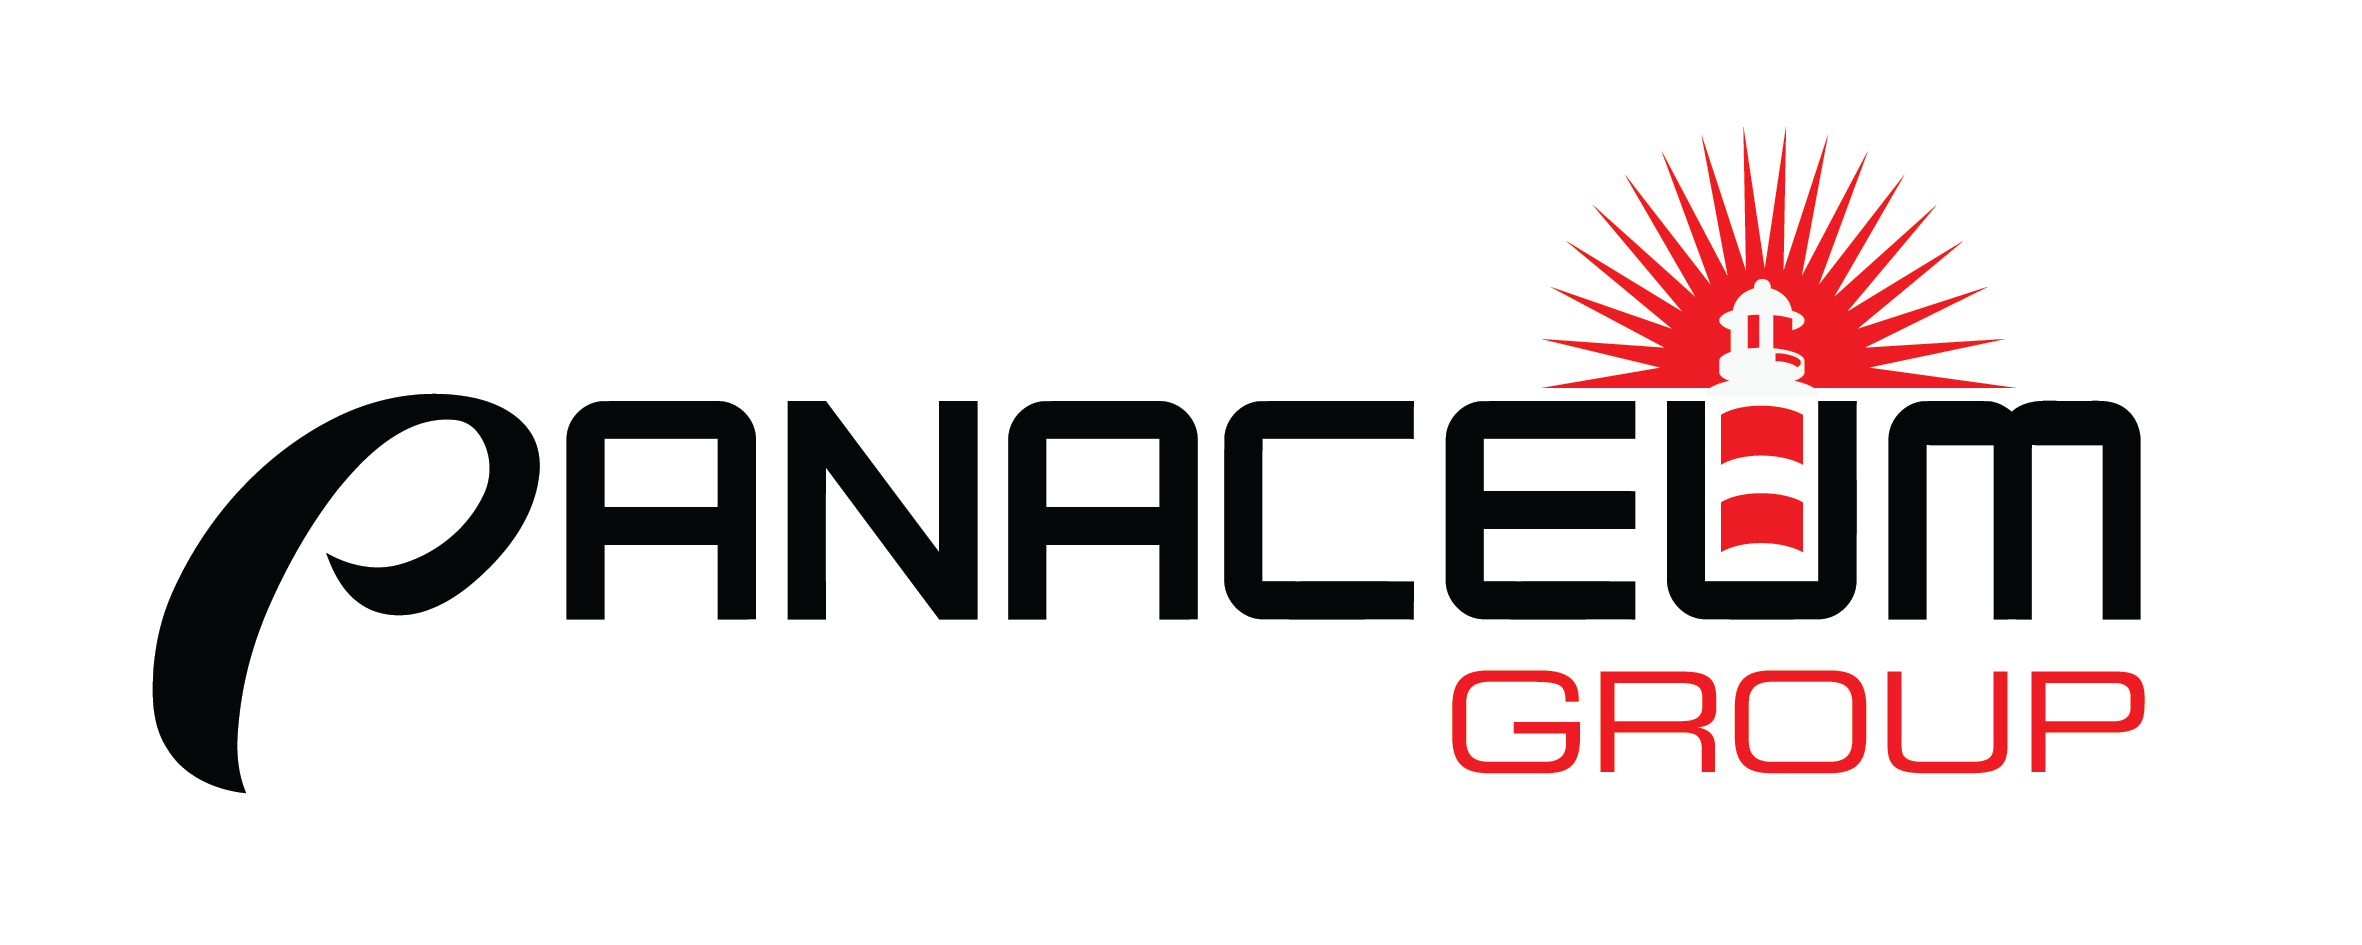 Panaceum Group Logo [High Res]